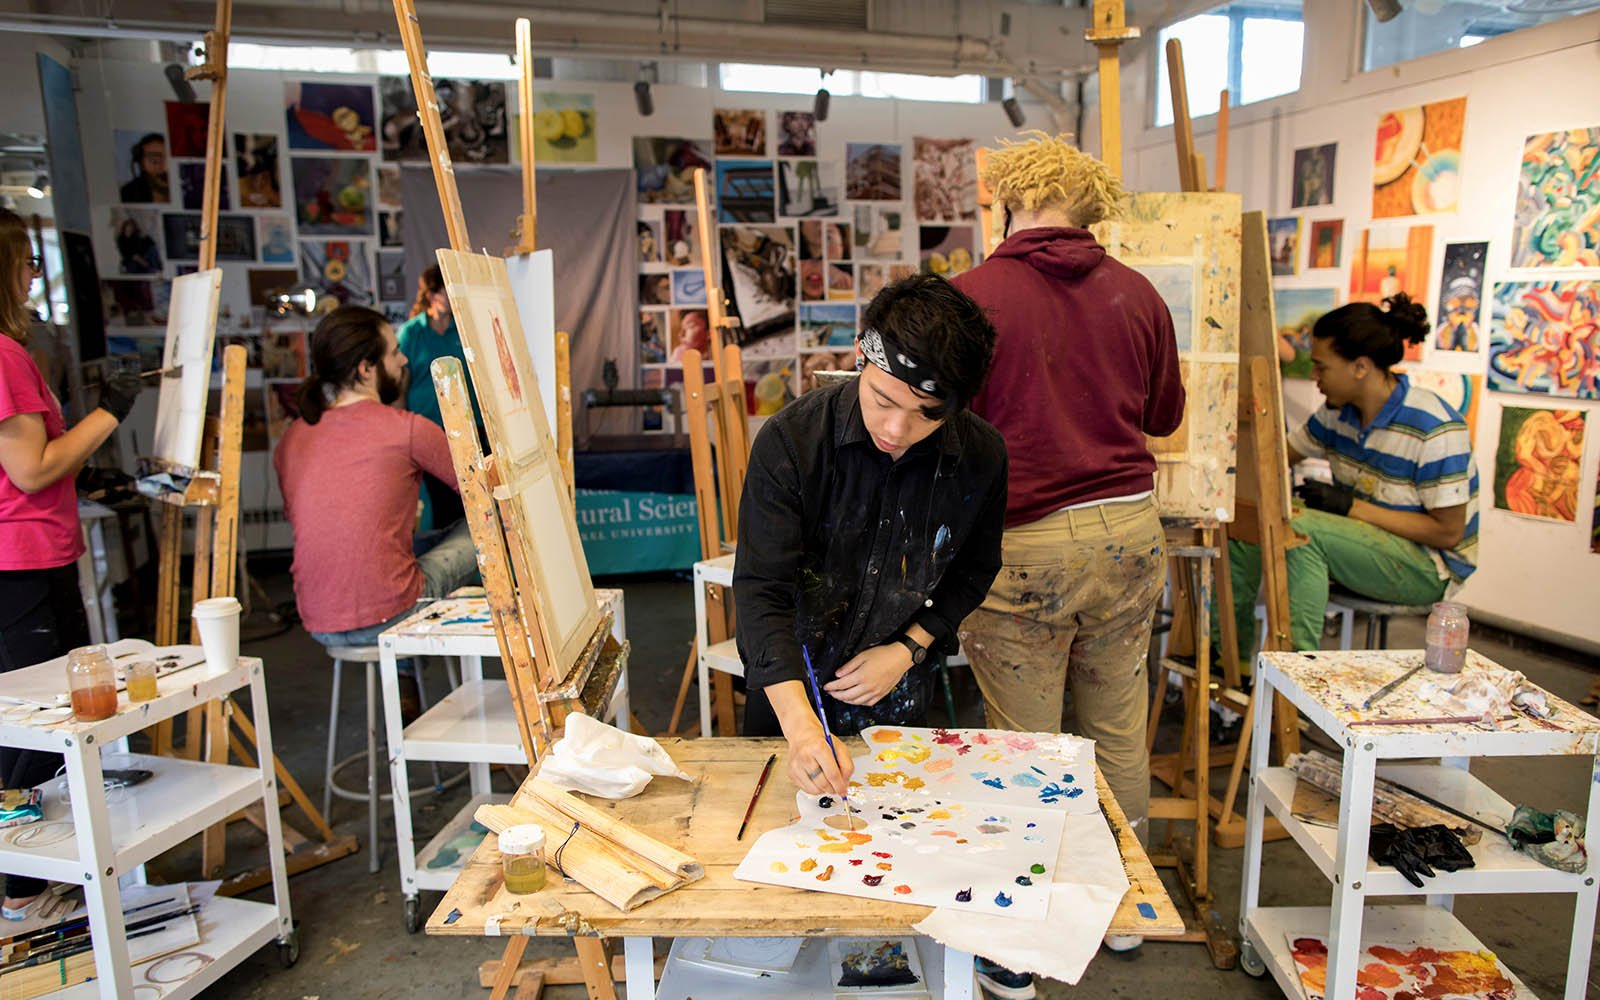 Student working on art in a studio